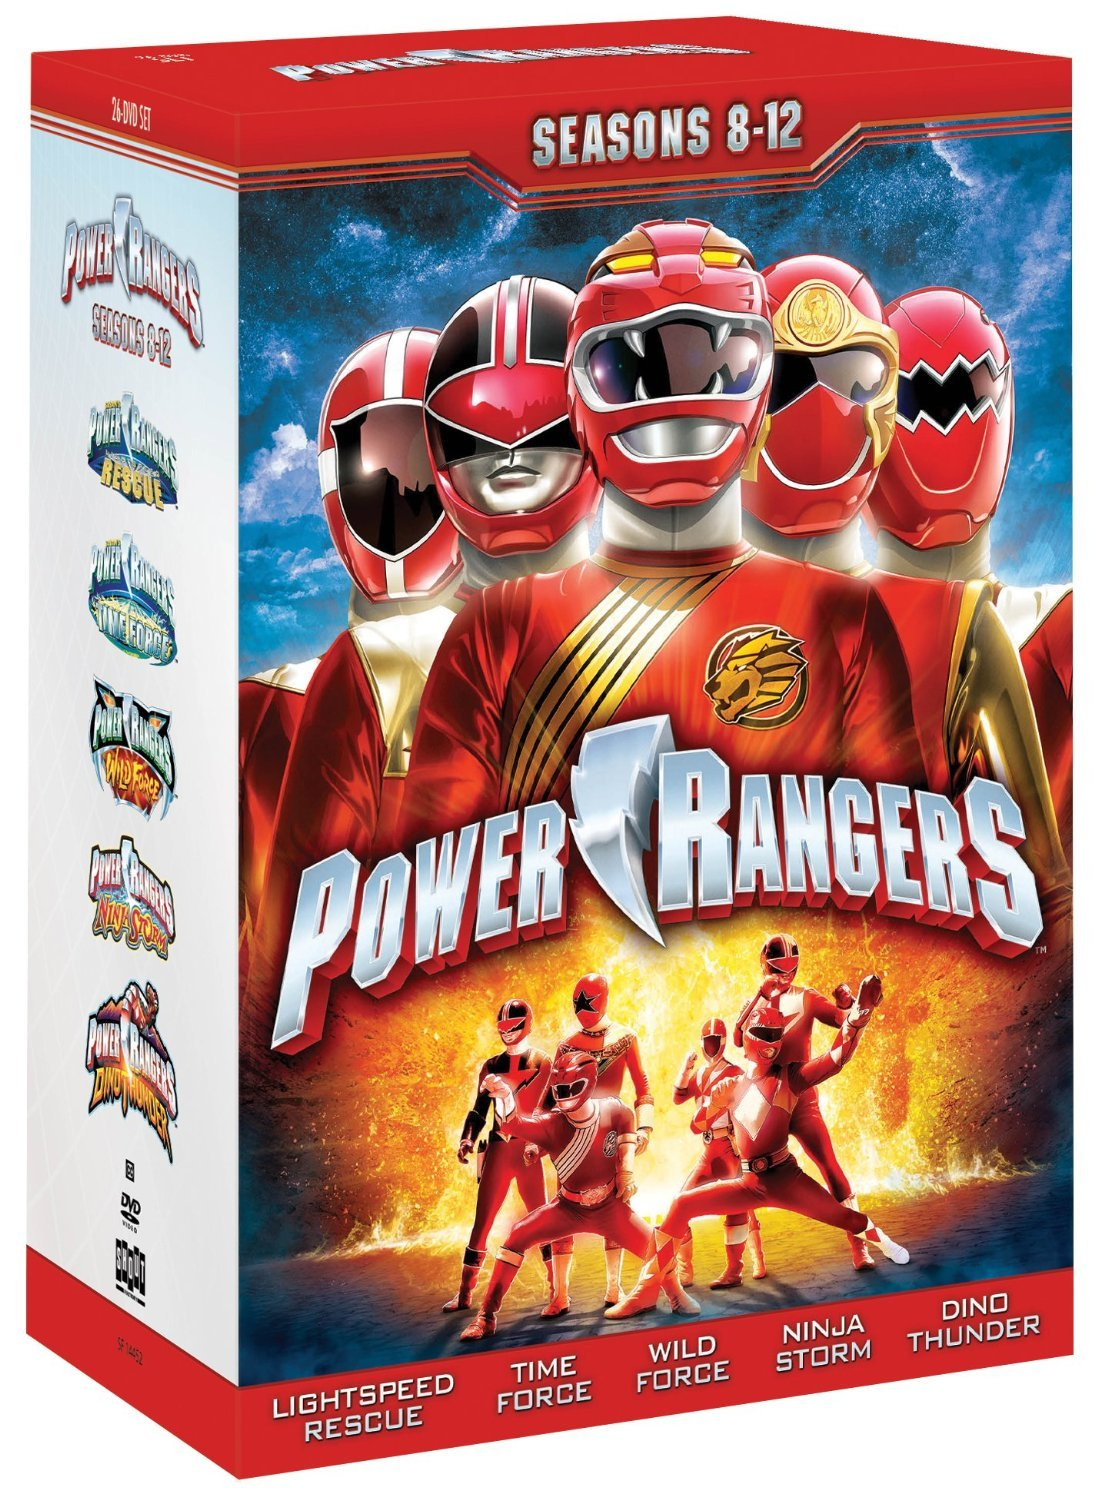 Power rangers seasons eight twelve 8 12  dvd 2013 26 disc box  8 9 10 11 12